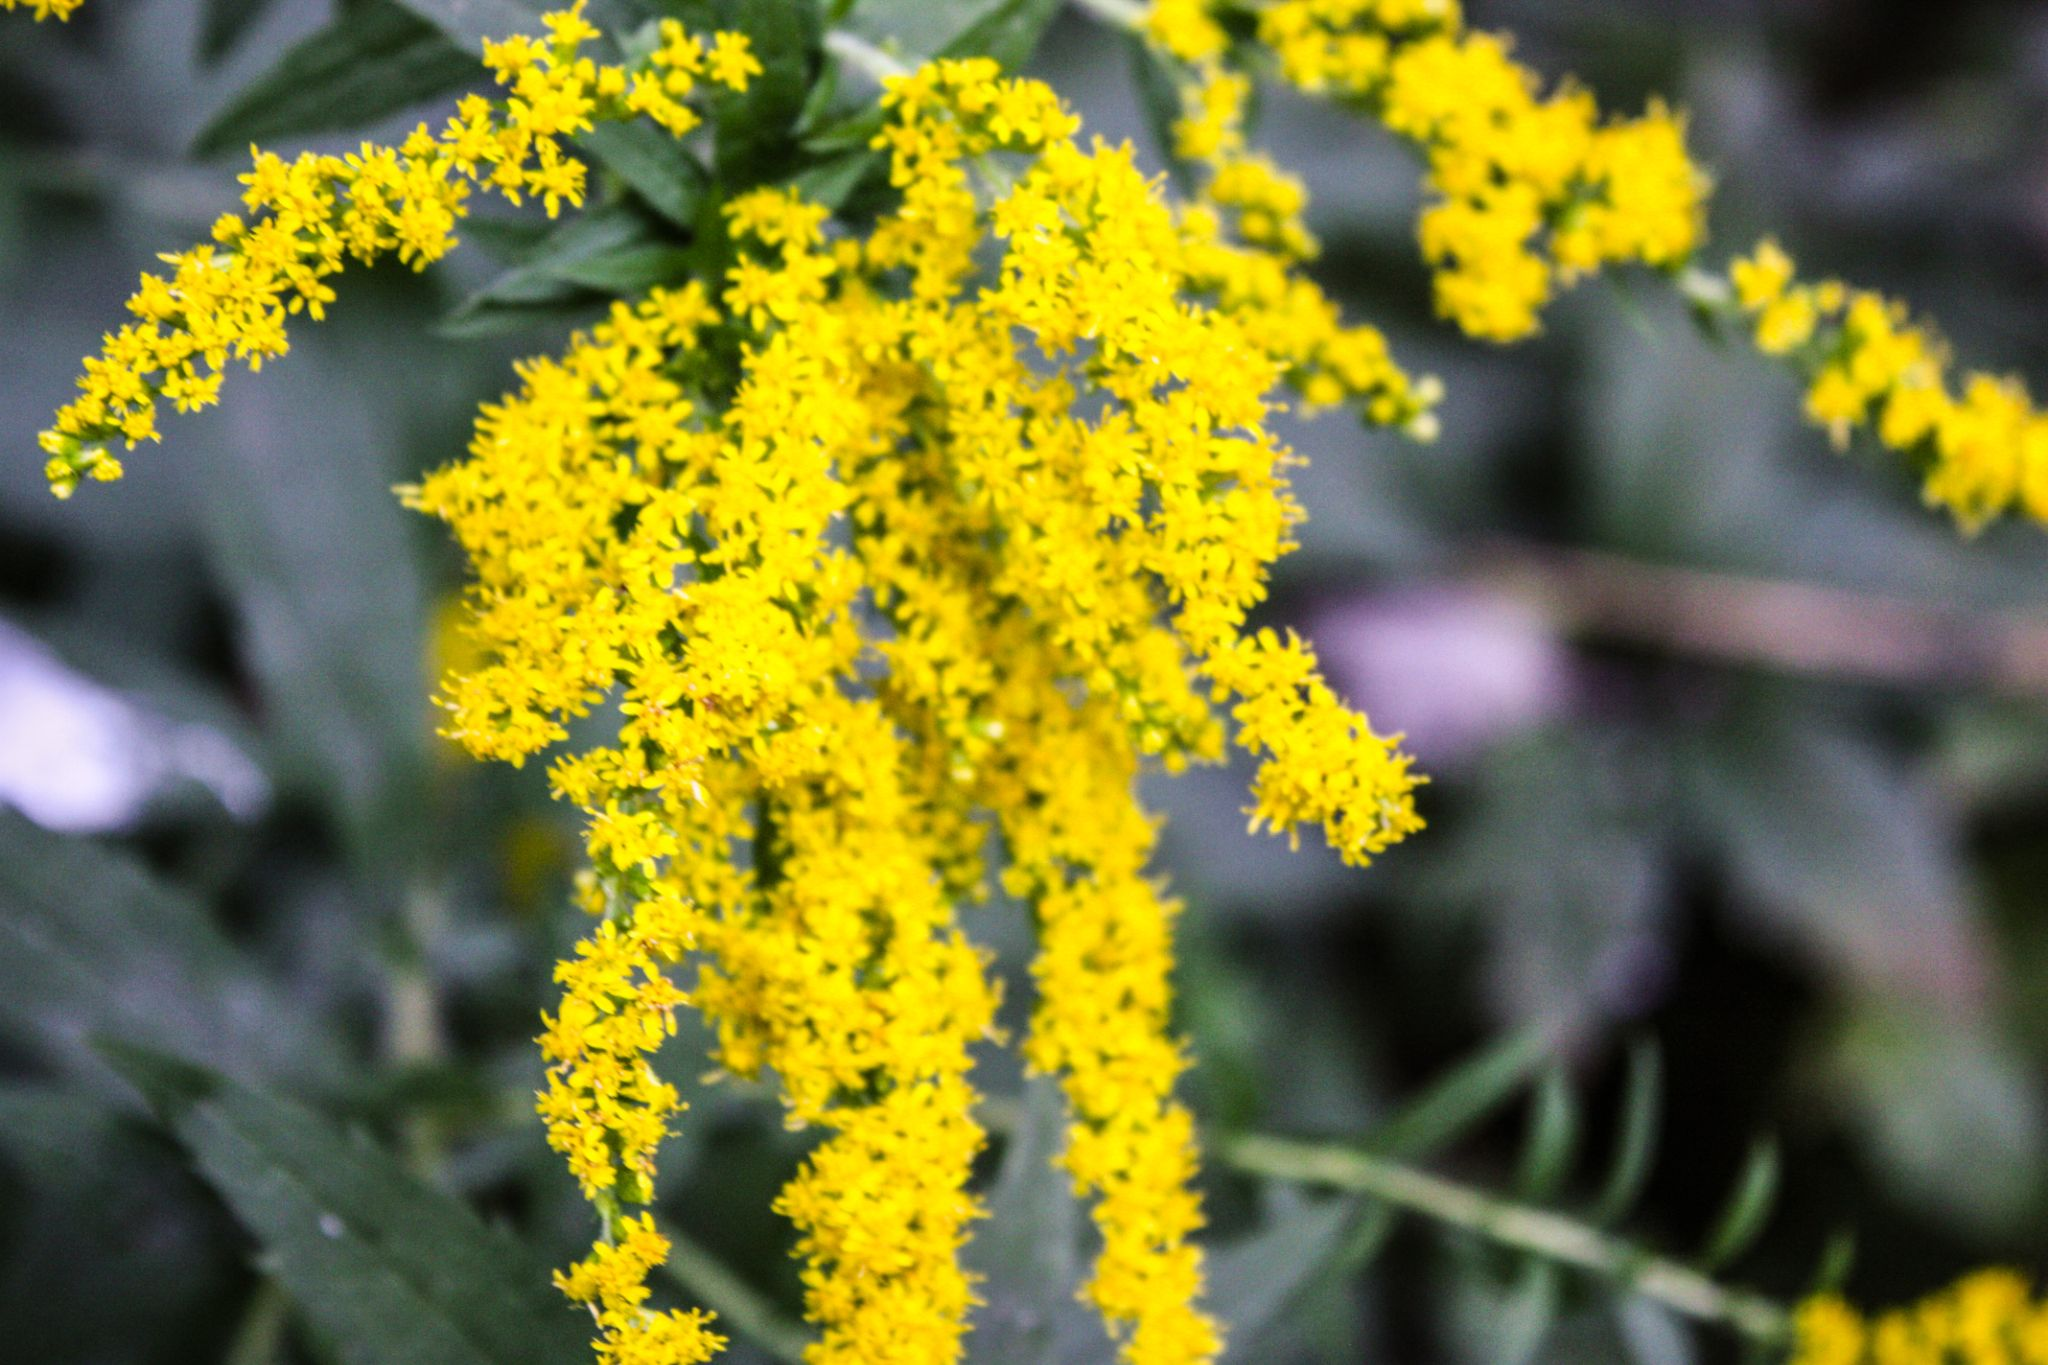 Goldenrod by Ruth Silvers